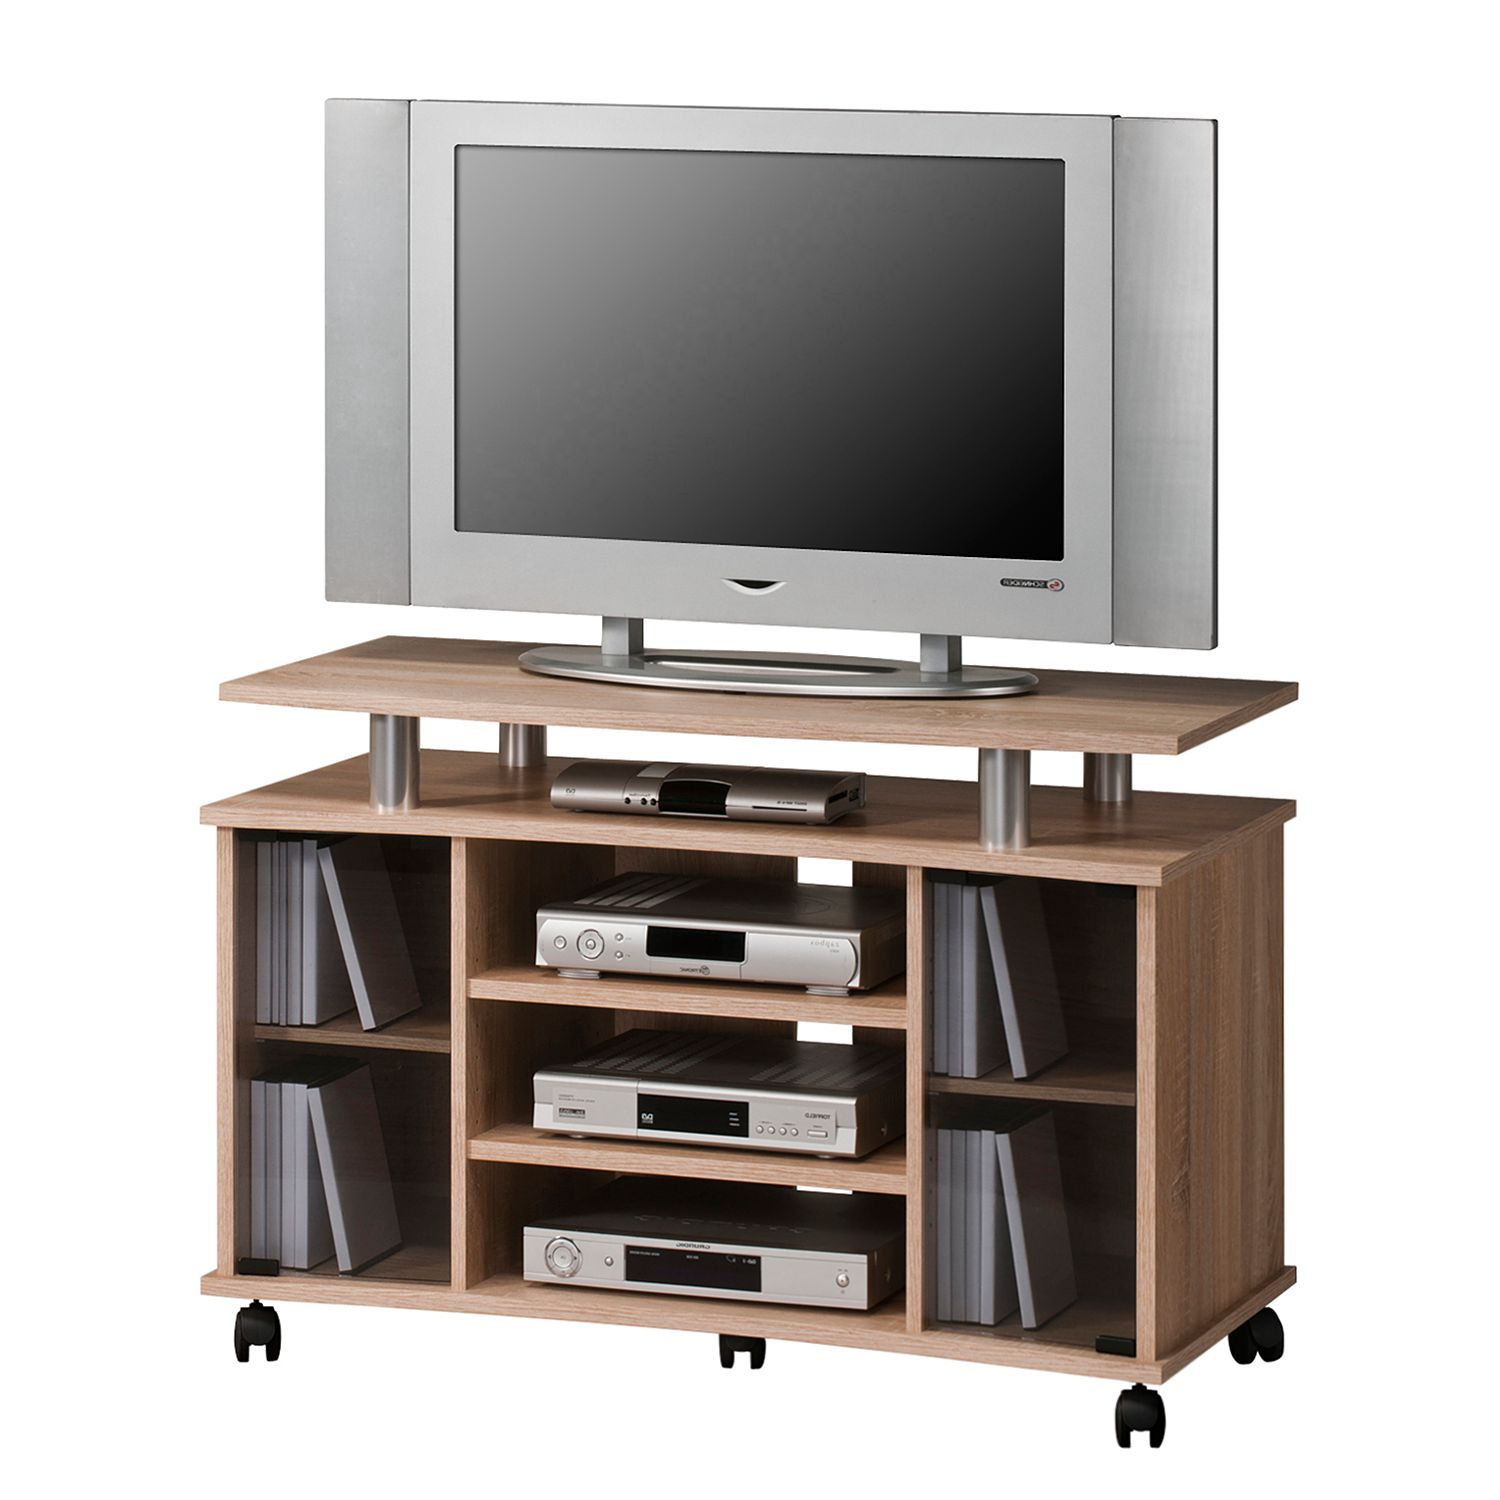 Tv Rack Mit Rollen стойност Бари Клин Tv Board Mit Rollen Amazon - Africanthyme.com